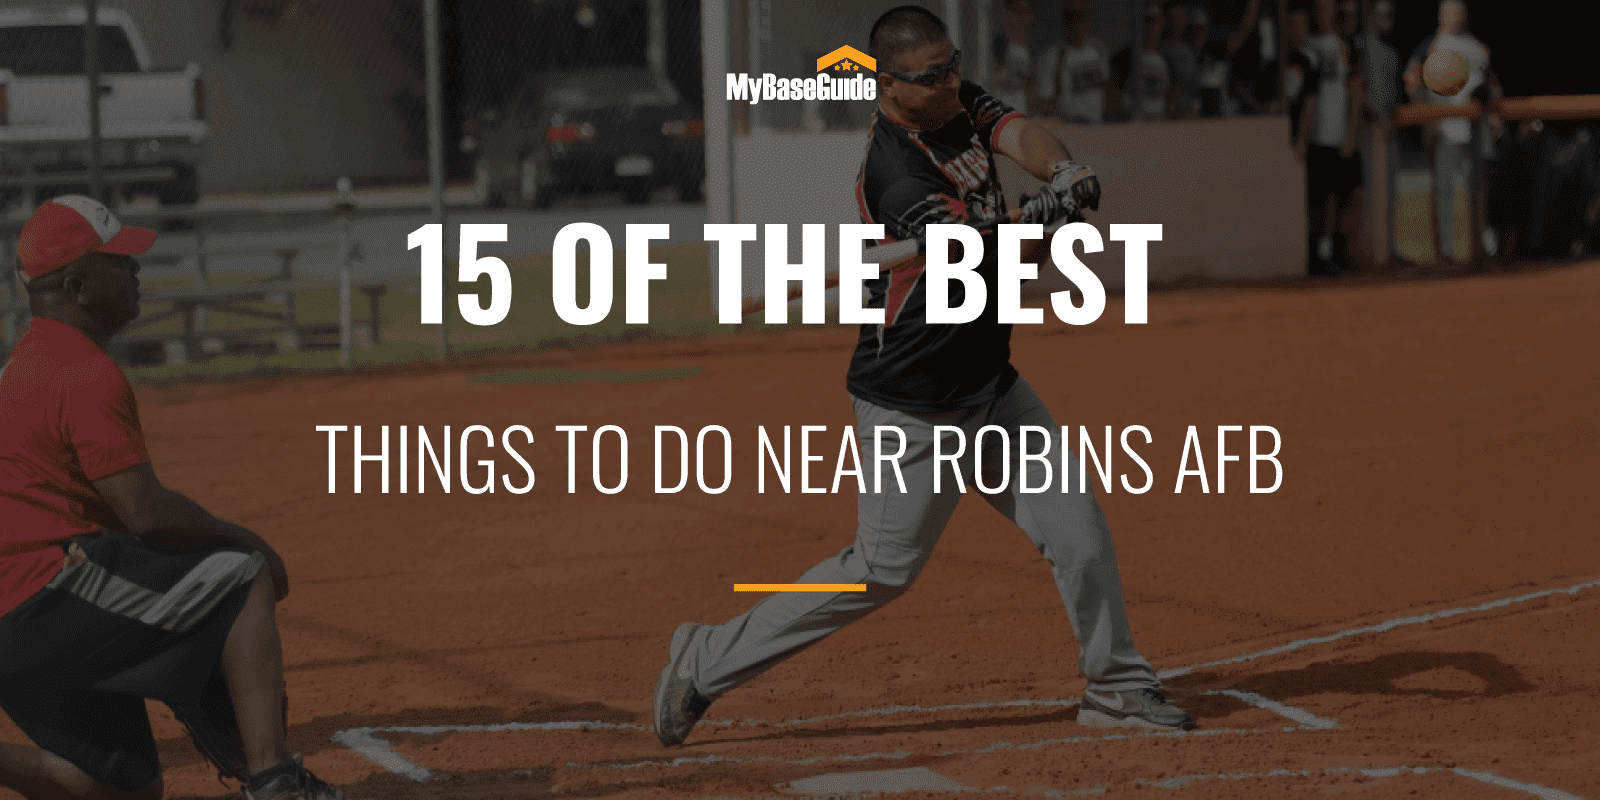 Bets things to do near Robins AFB